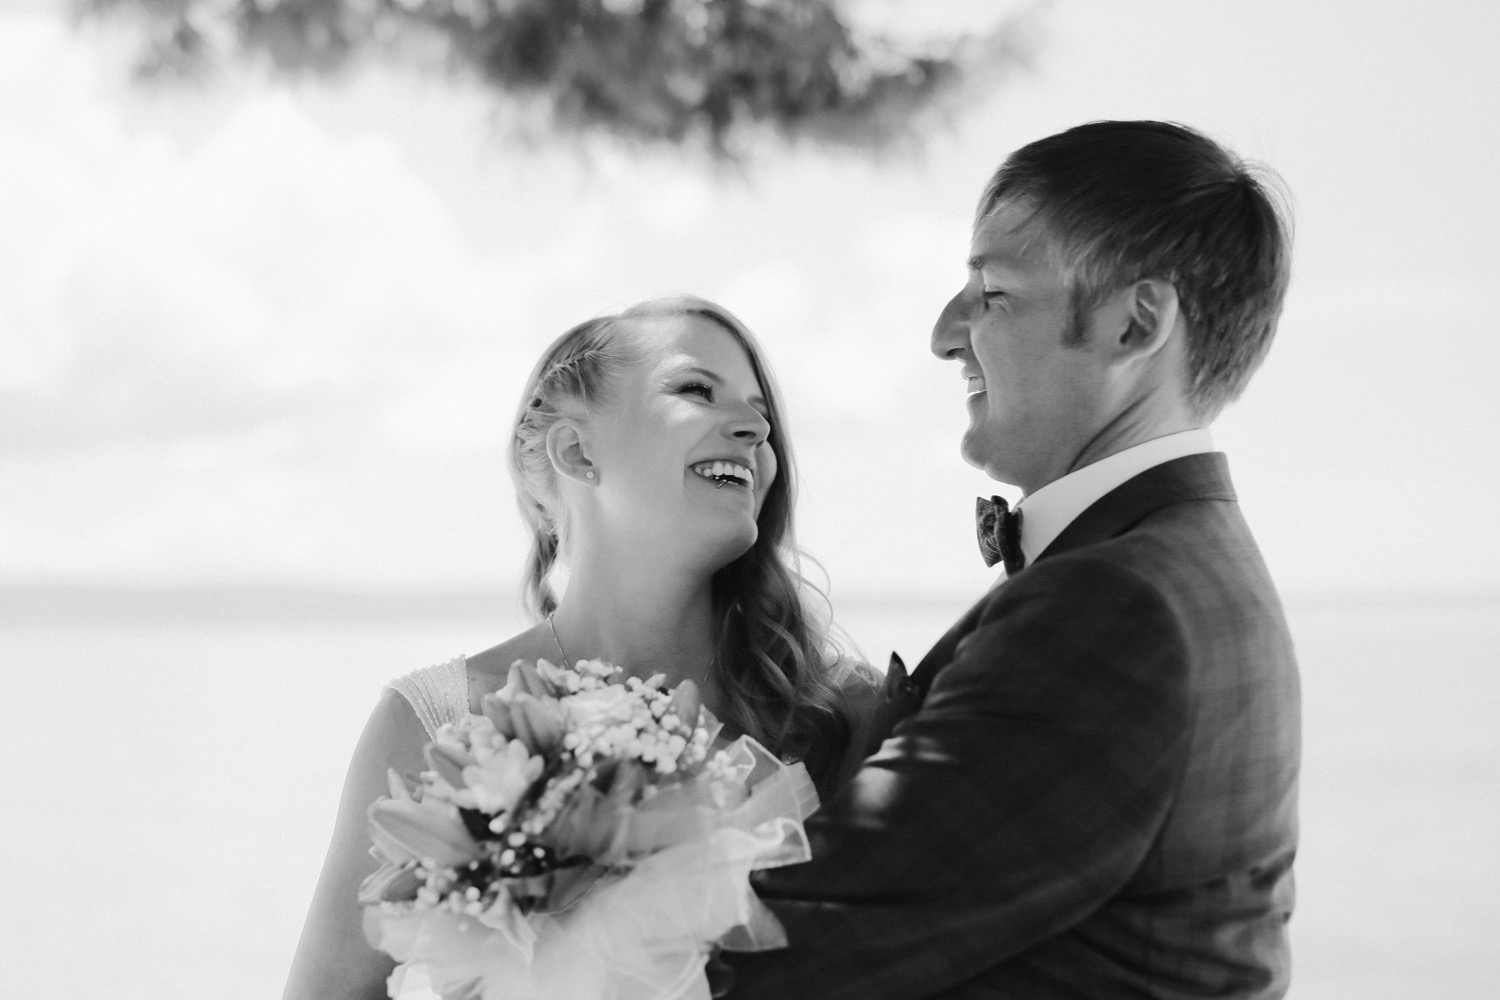 Croatia beach elopement hilke thomas love and ventures photography 45 | Croatia Elopement Photographer and Videographer